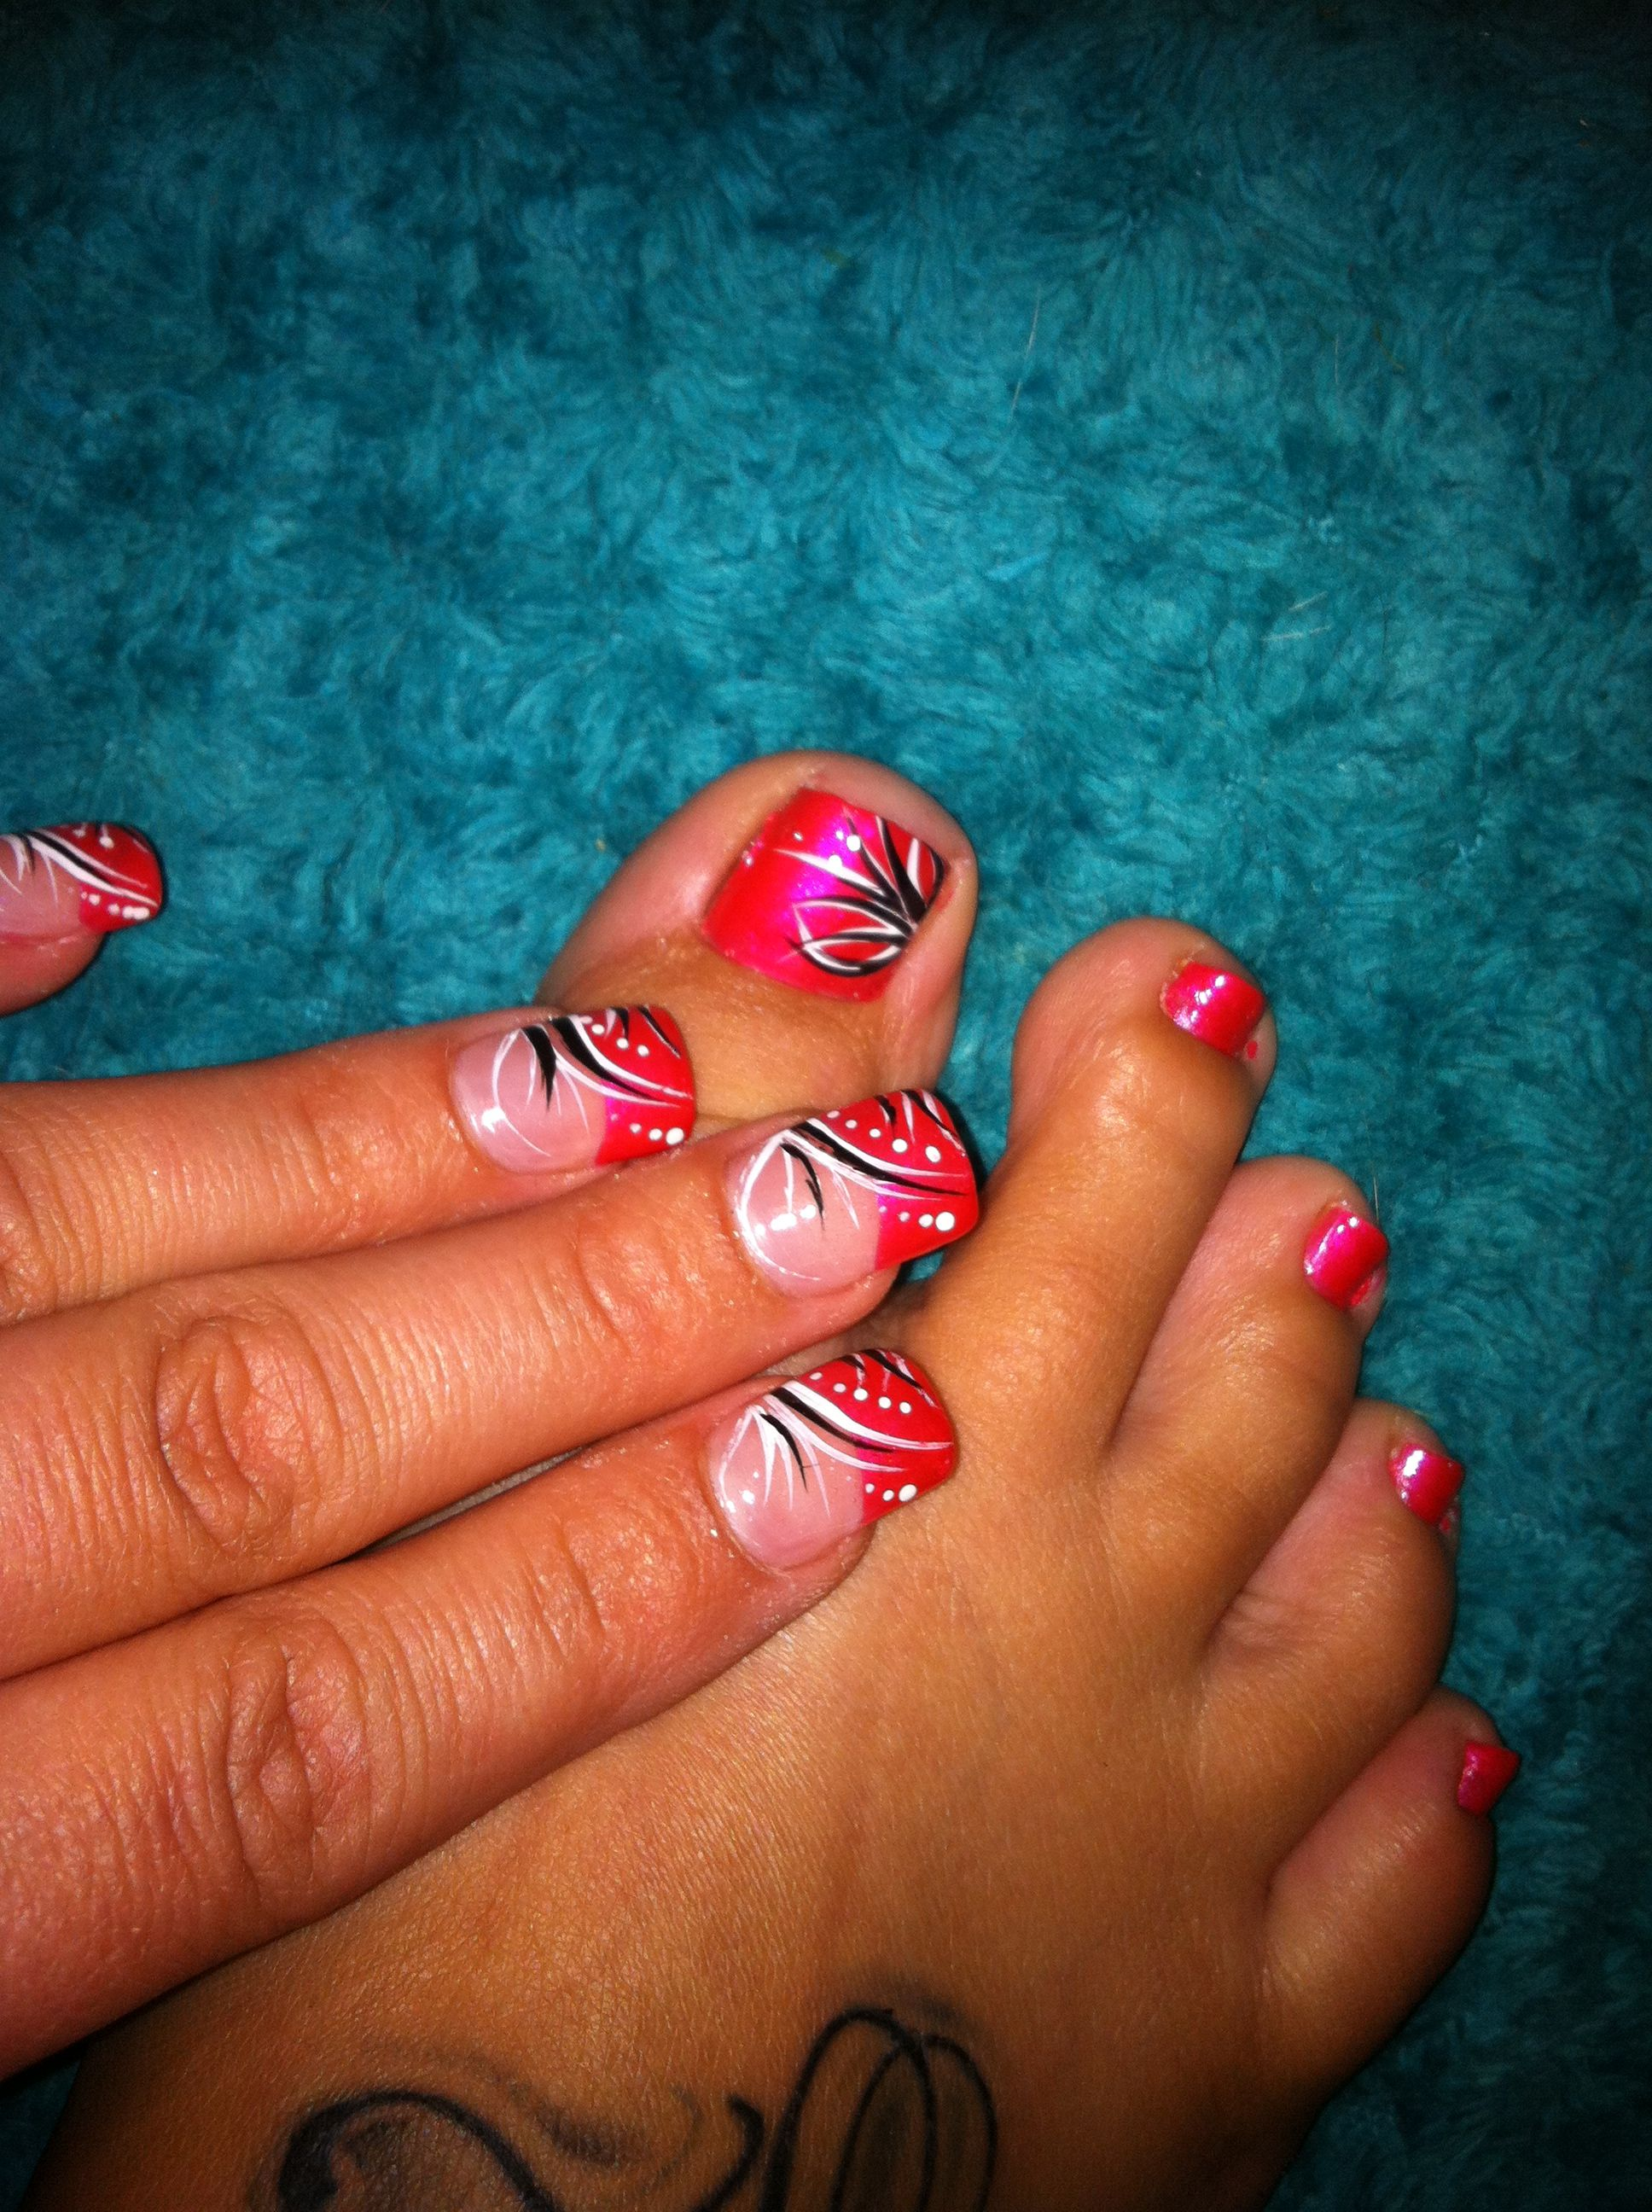 Nail art by Lisa, Grant st. Buffalo, NY, Wills Nails! Pink, black and white, simple lines, flower strokes